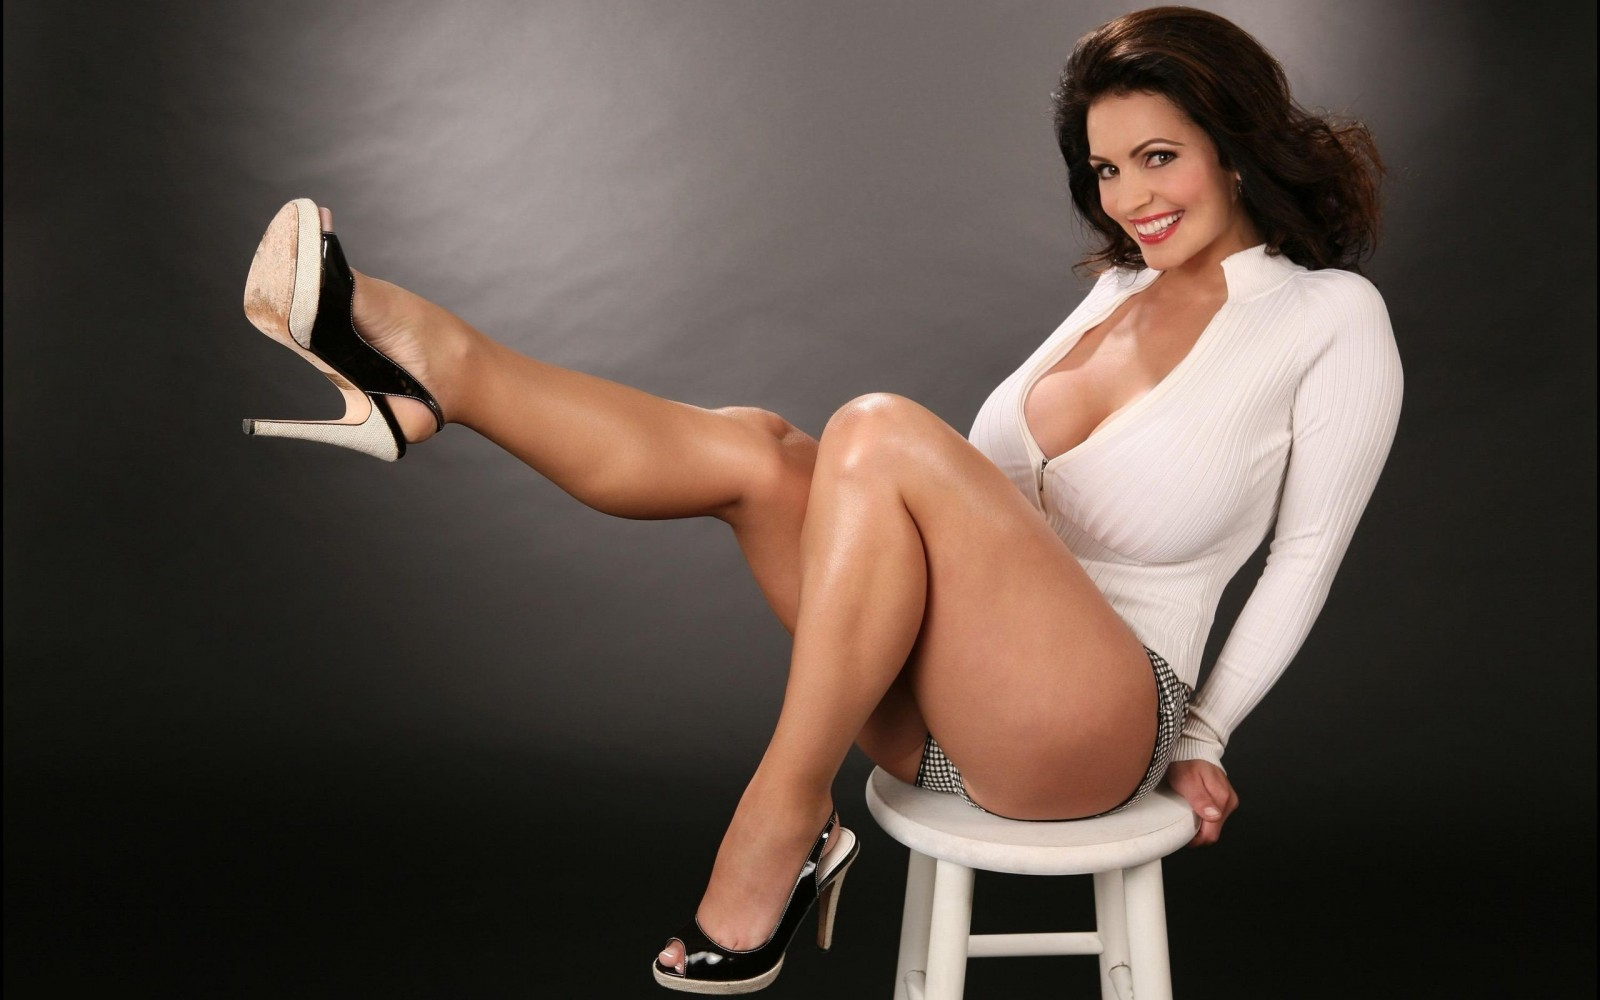 American Model Denise Milani Hot Pictures And Wallpapers